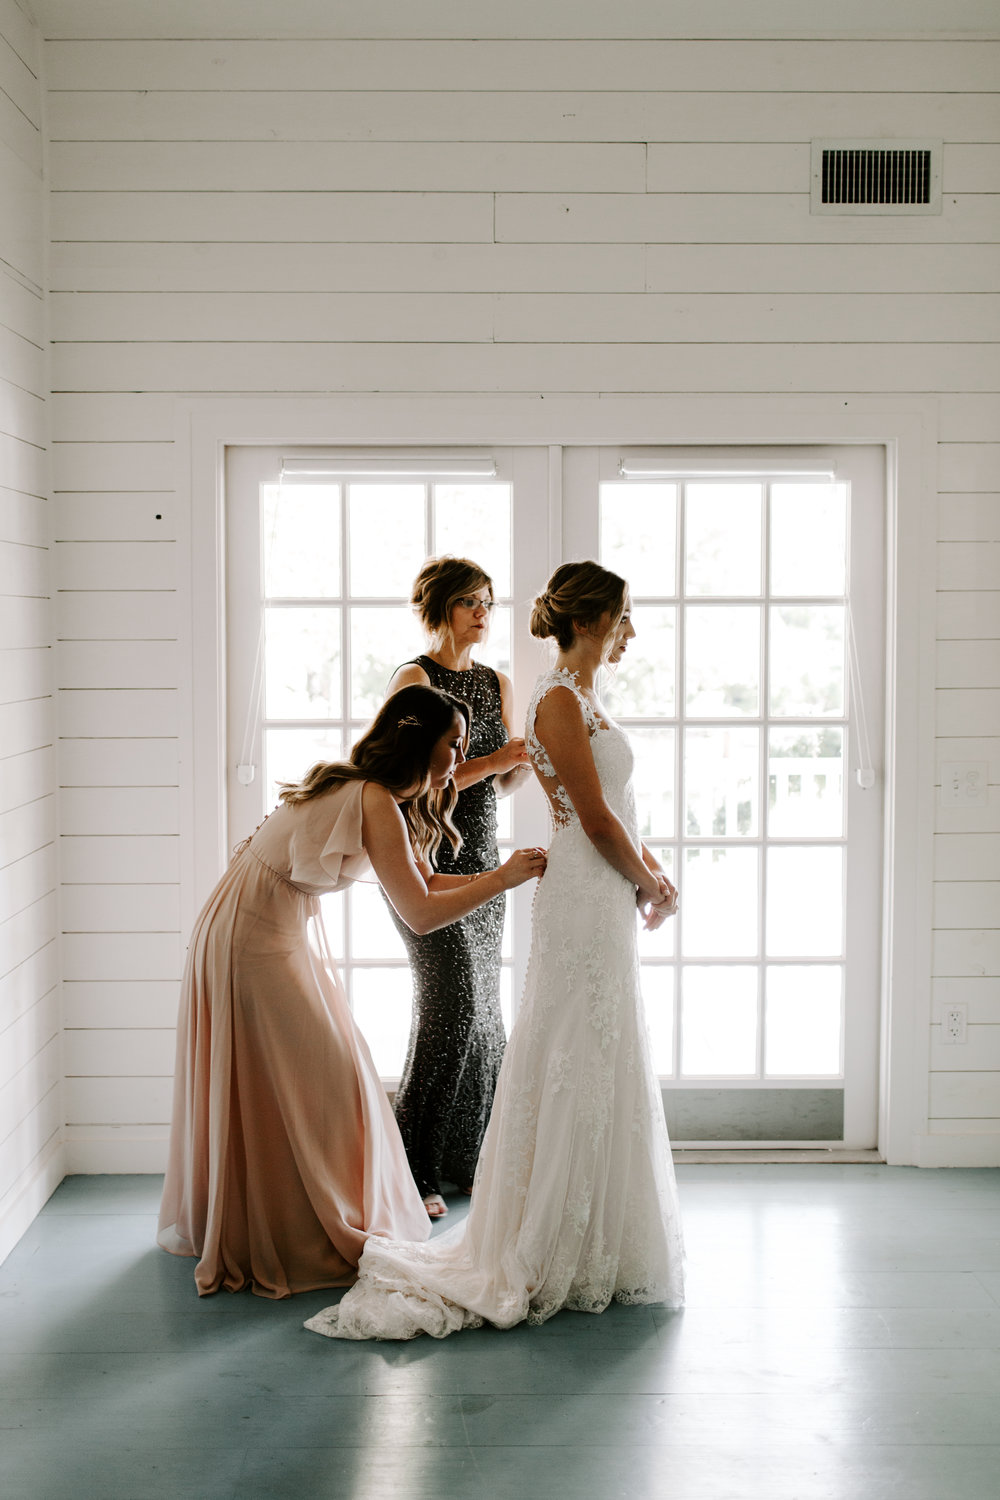 cailin+hails_destination_wedding_fairhope_daphne_mobile_alabama_madisonrylee_0035.jpg